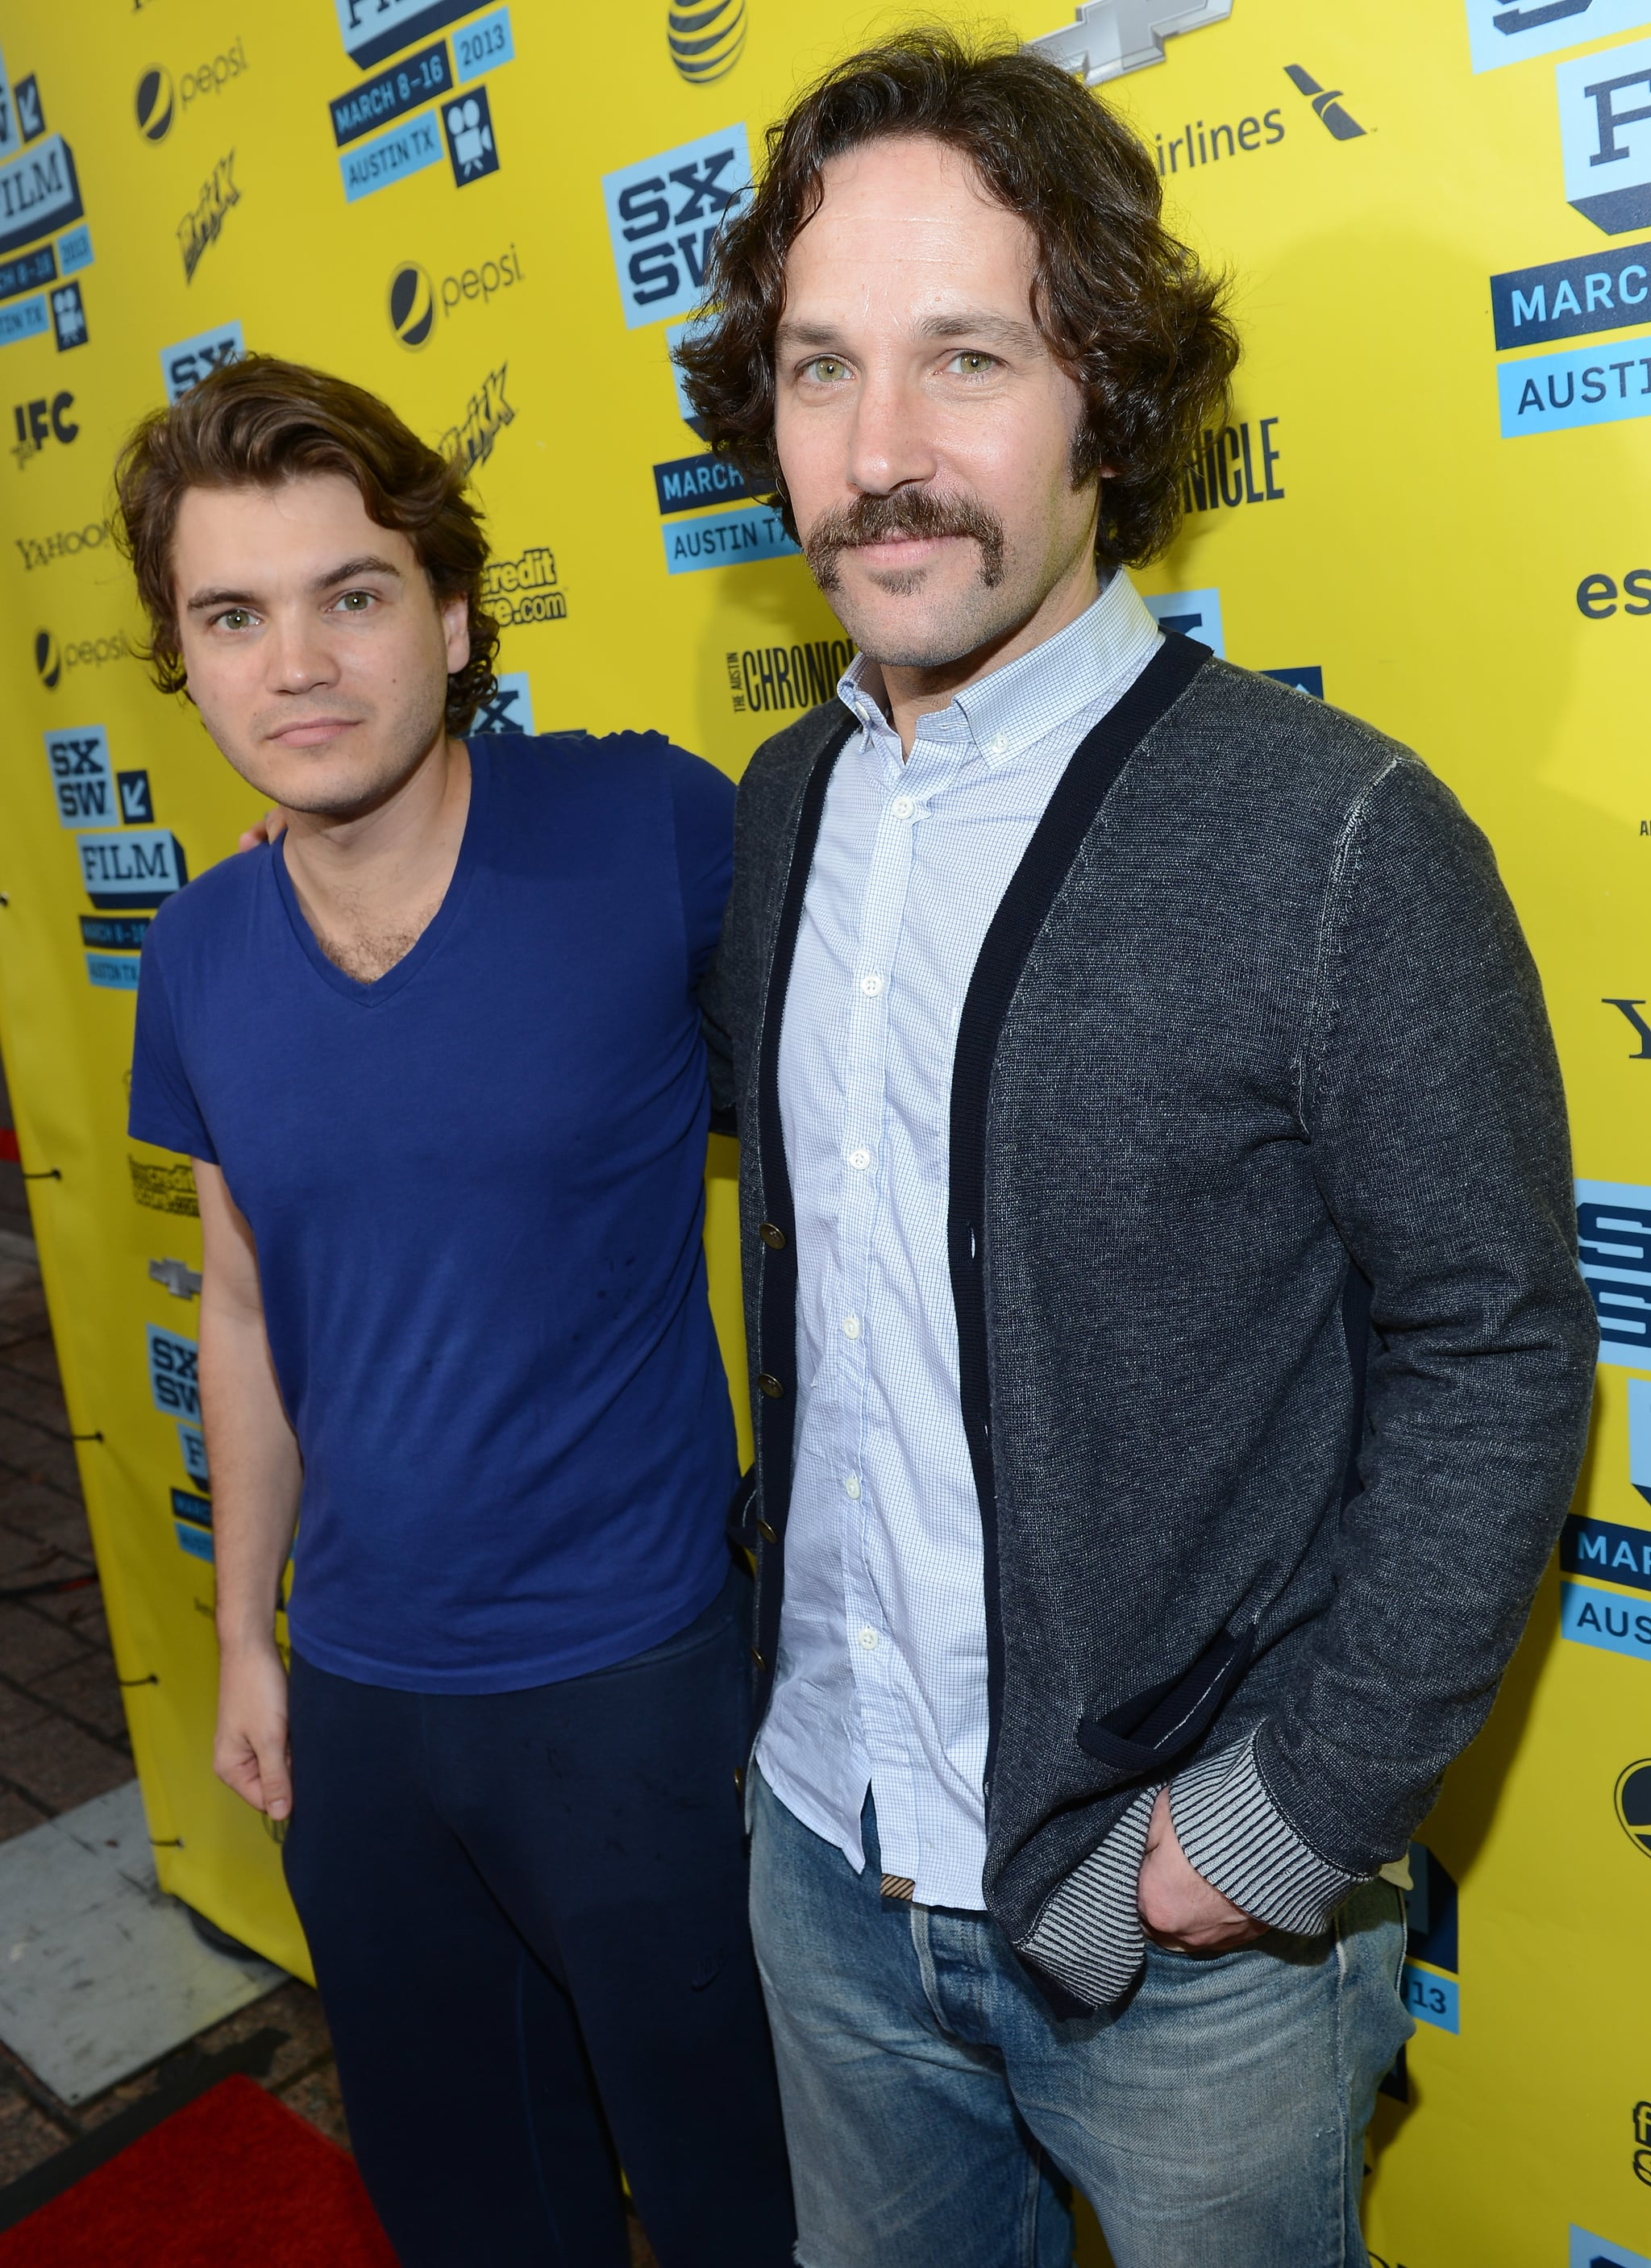 Emile Hirsch and Paul Rudd posed together at the Prince Avalanche screening at SXSW.